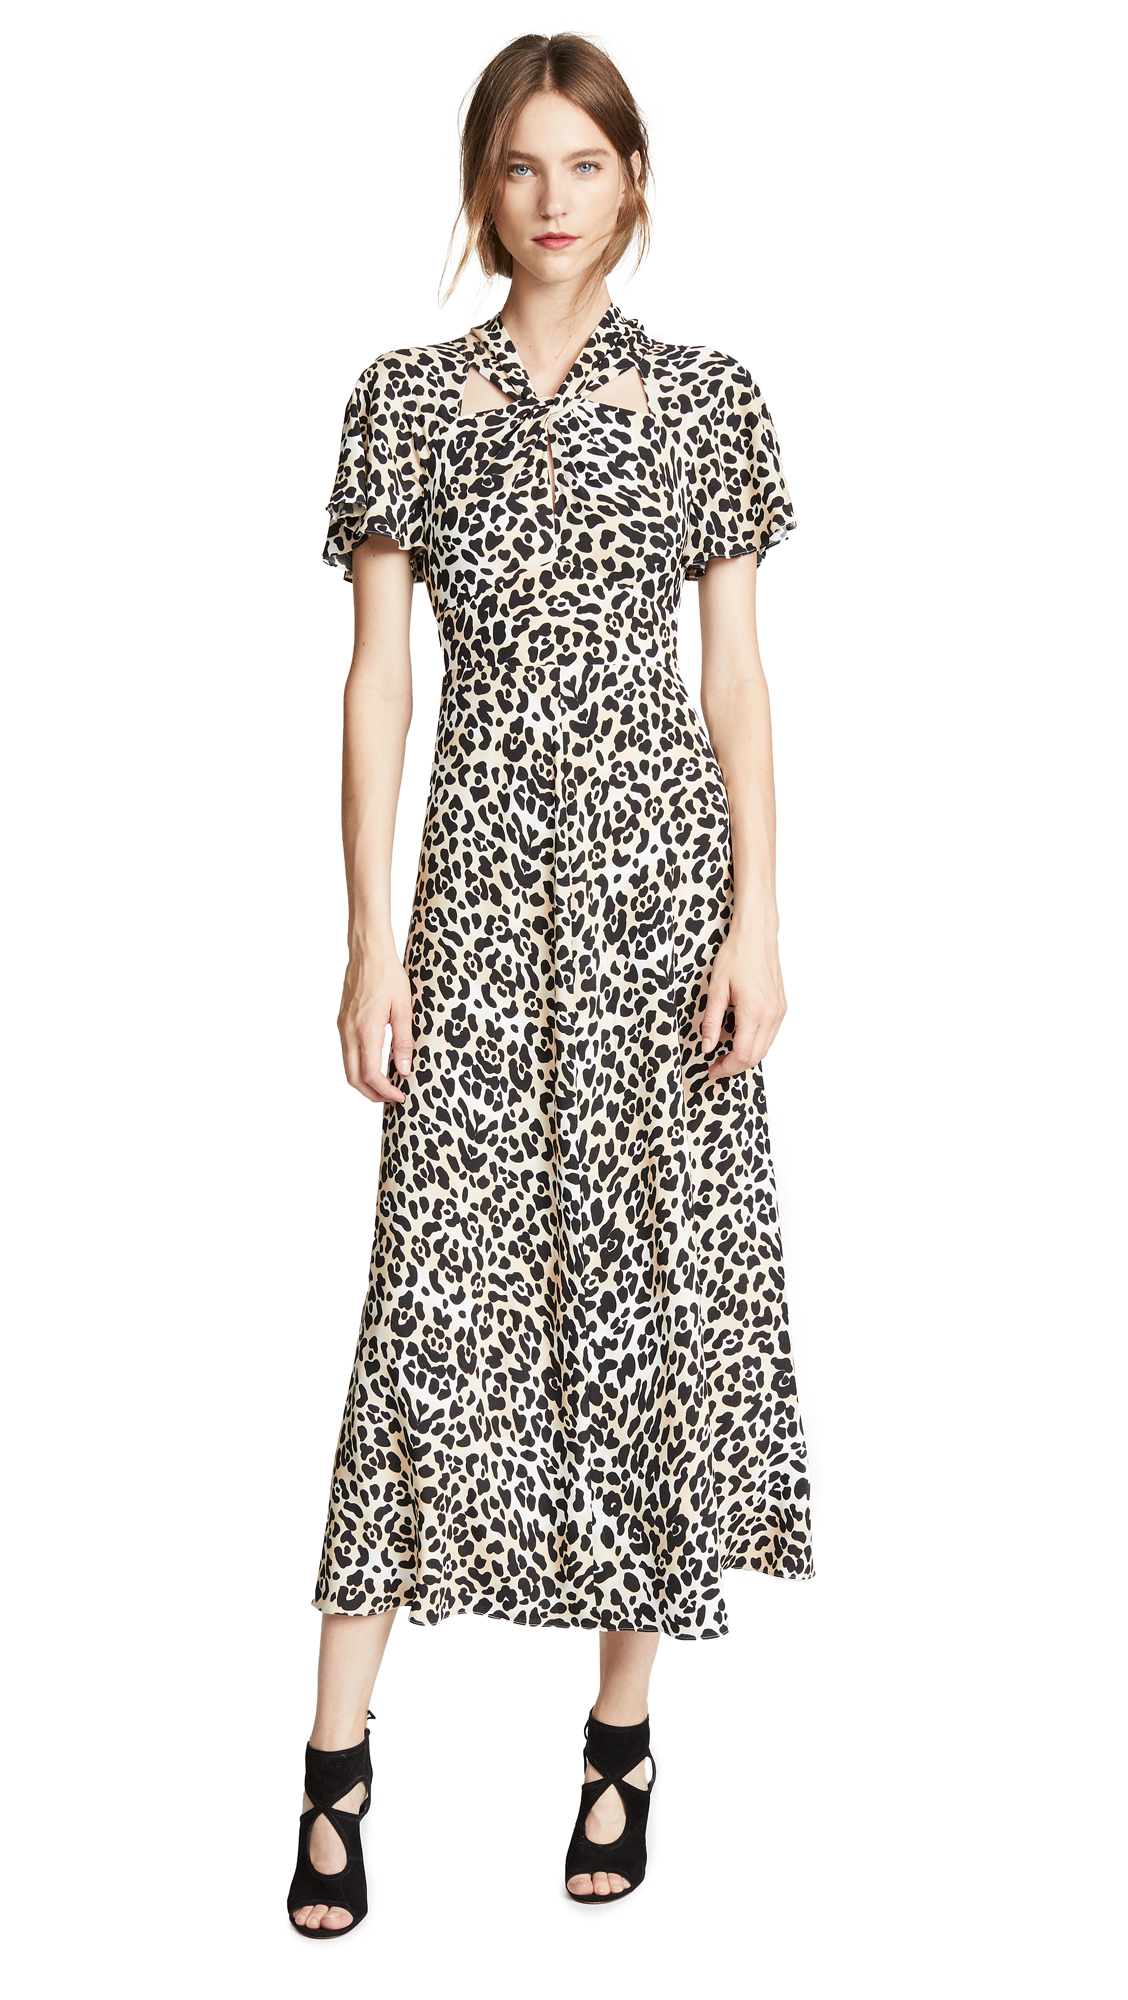 Temperley London Wild Cat Midi Dress In Leopard Mix